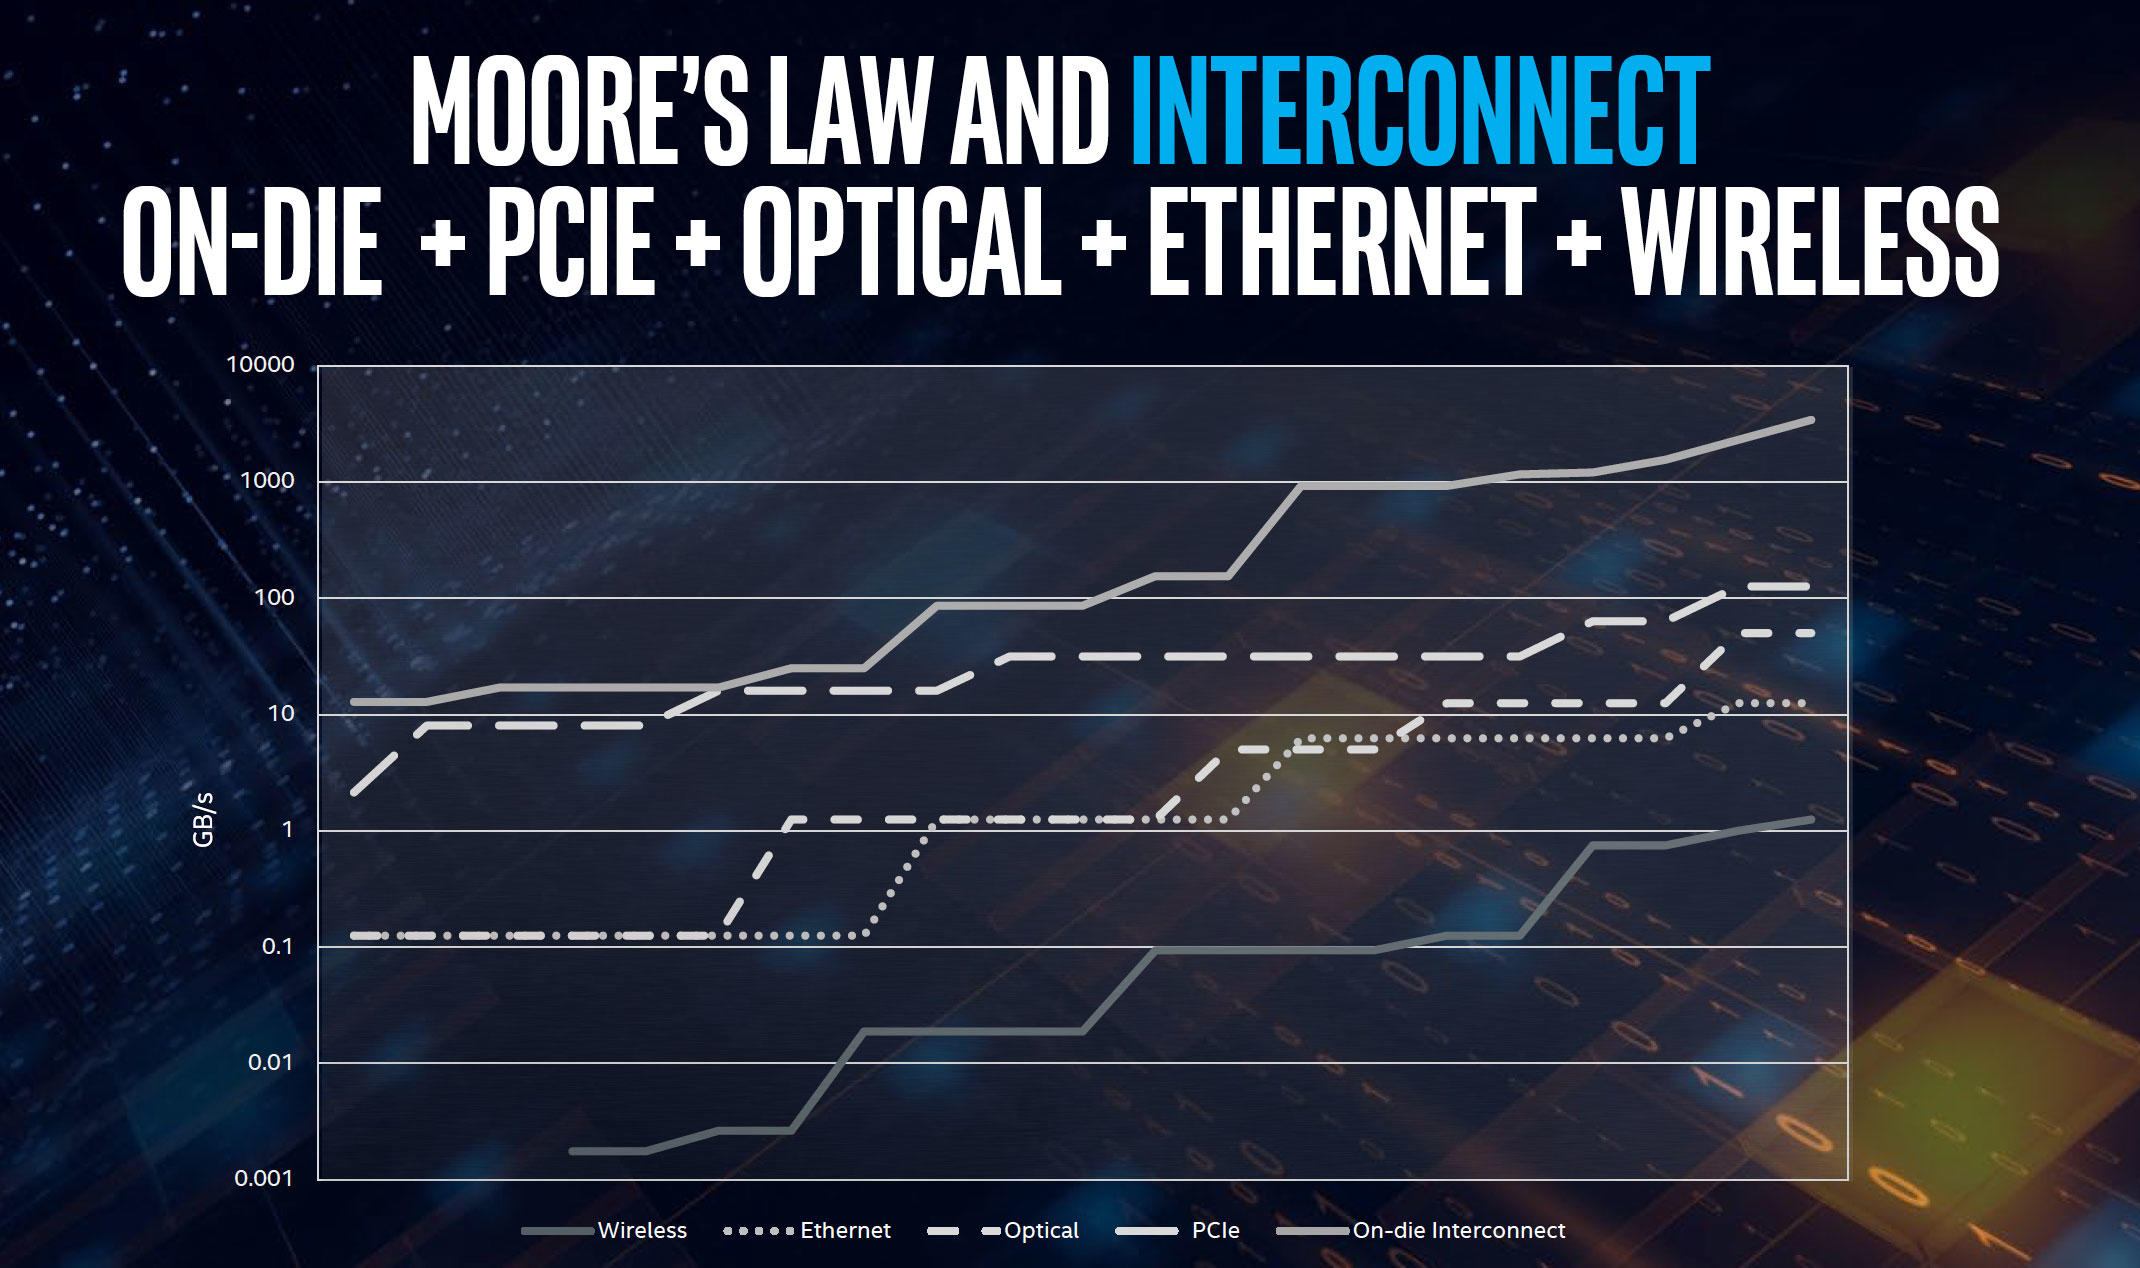 Over the last 12 years, interconnect speeds have improved exponentially from the shortest data-transfer distances to the longest.